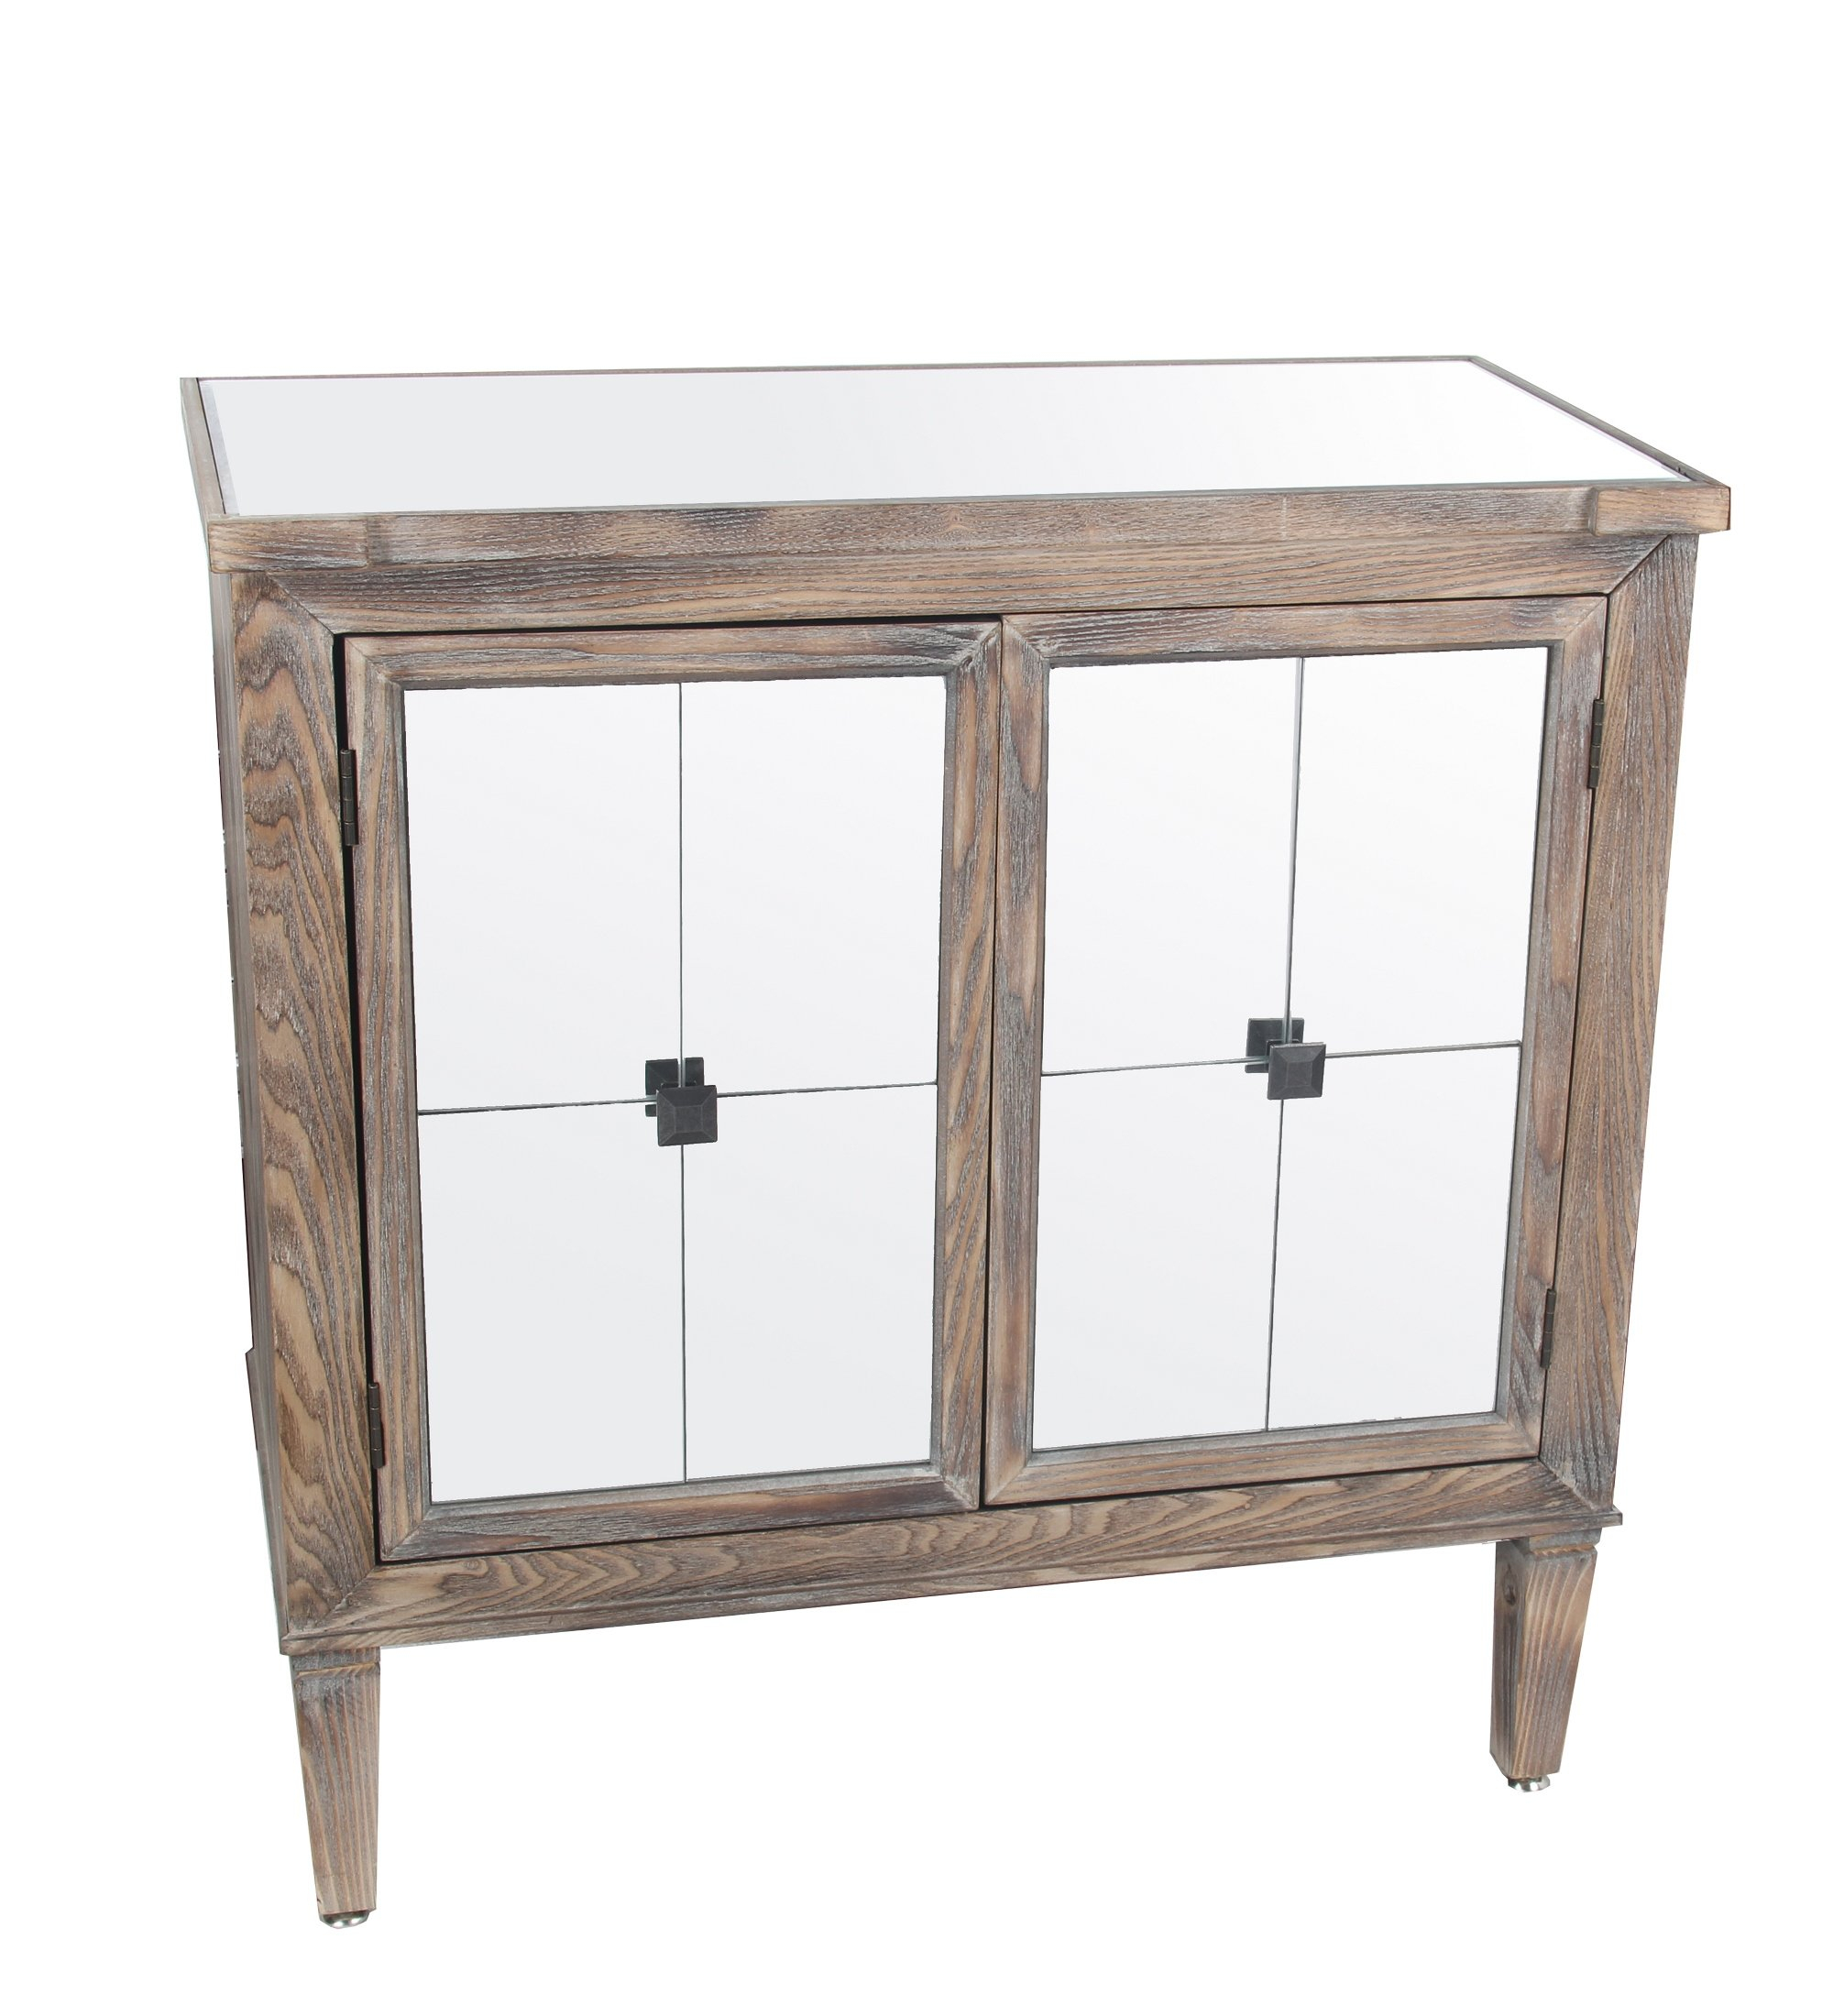 Ringling 2 Door Accent Cabinet intended for Eau Claire 6 Door Accent Cabinets (Image 26 of 30)